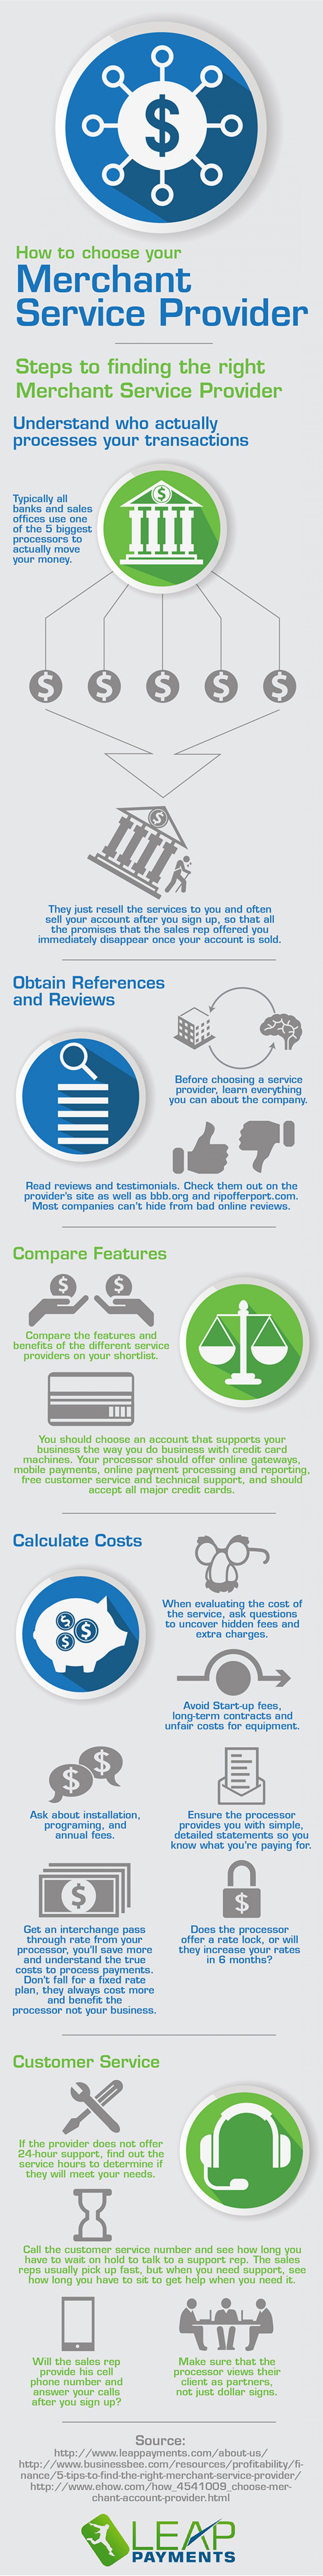 How to Choose Your Merchant Service Provider Infographic